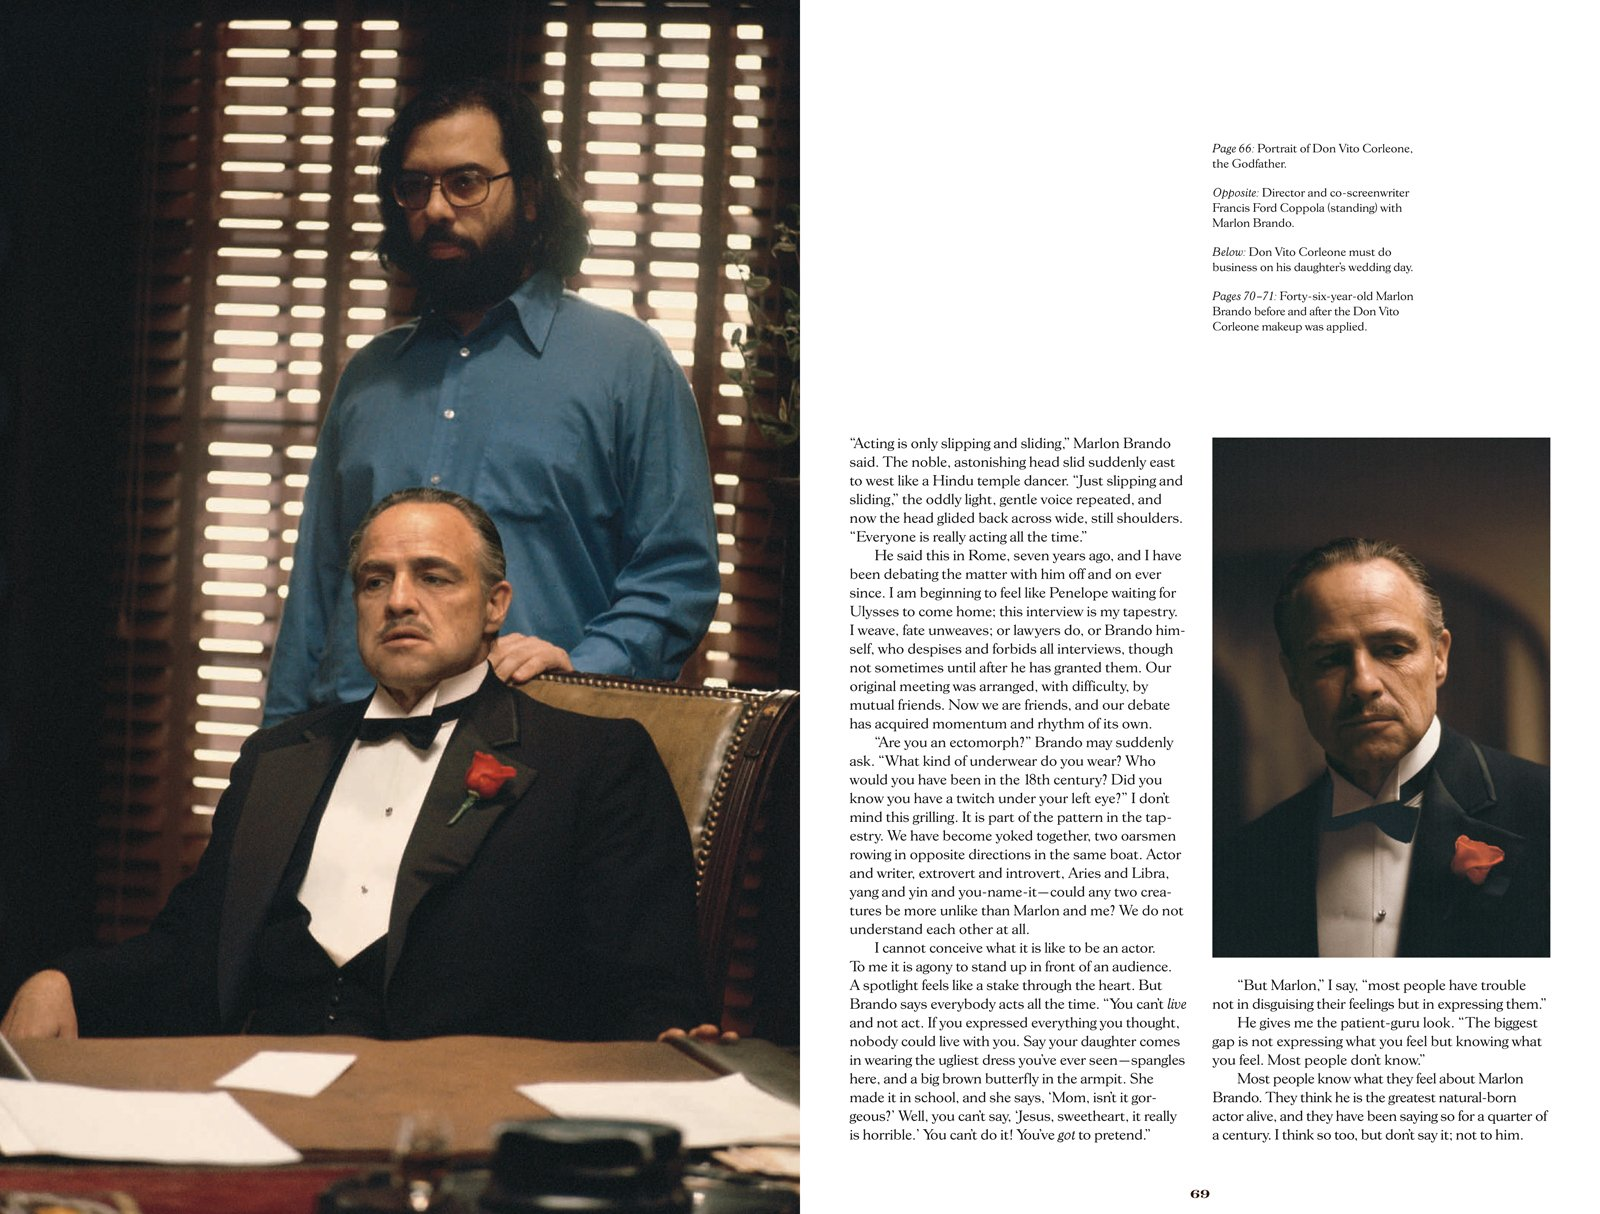 The godfather family album english german and french edition the godfather family album english german and french edition paul duncan steve schapiro 9783836548885 amazon books thecheapjerseys Gallery